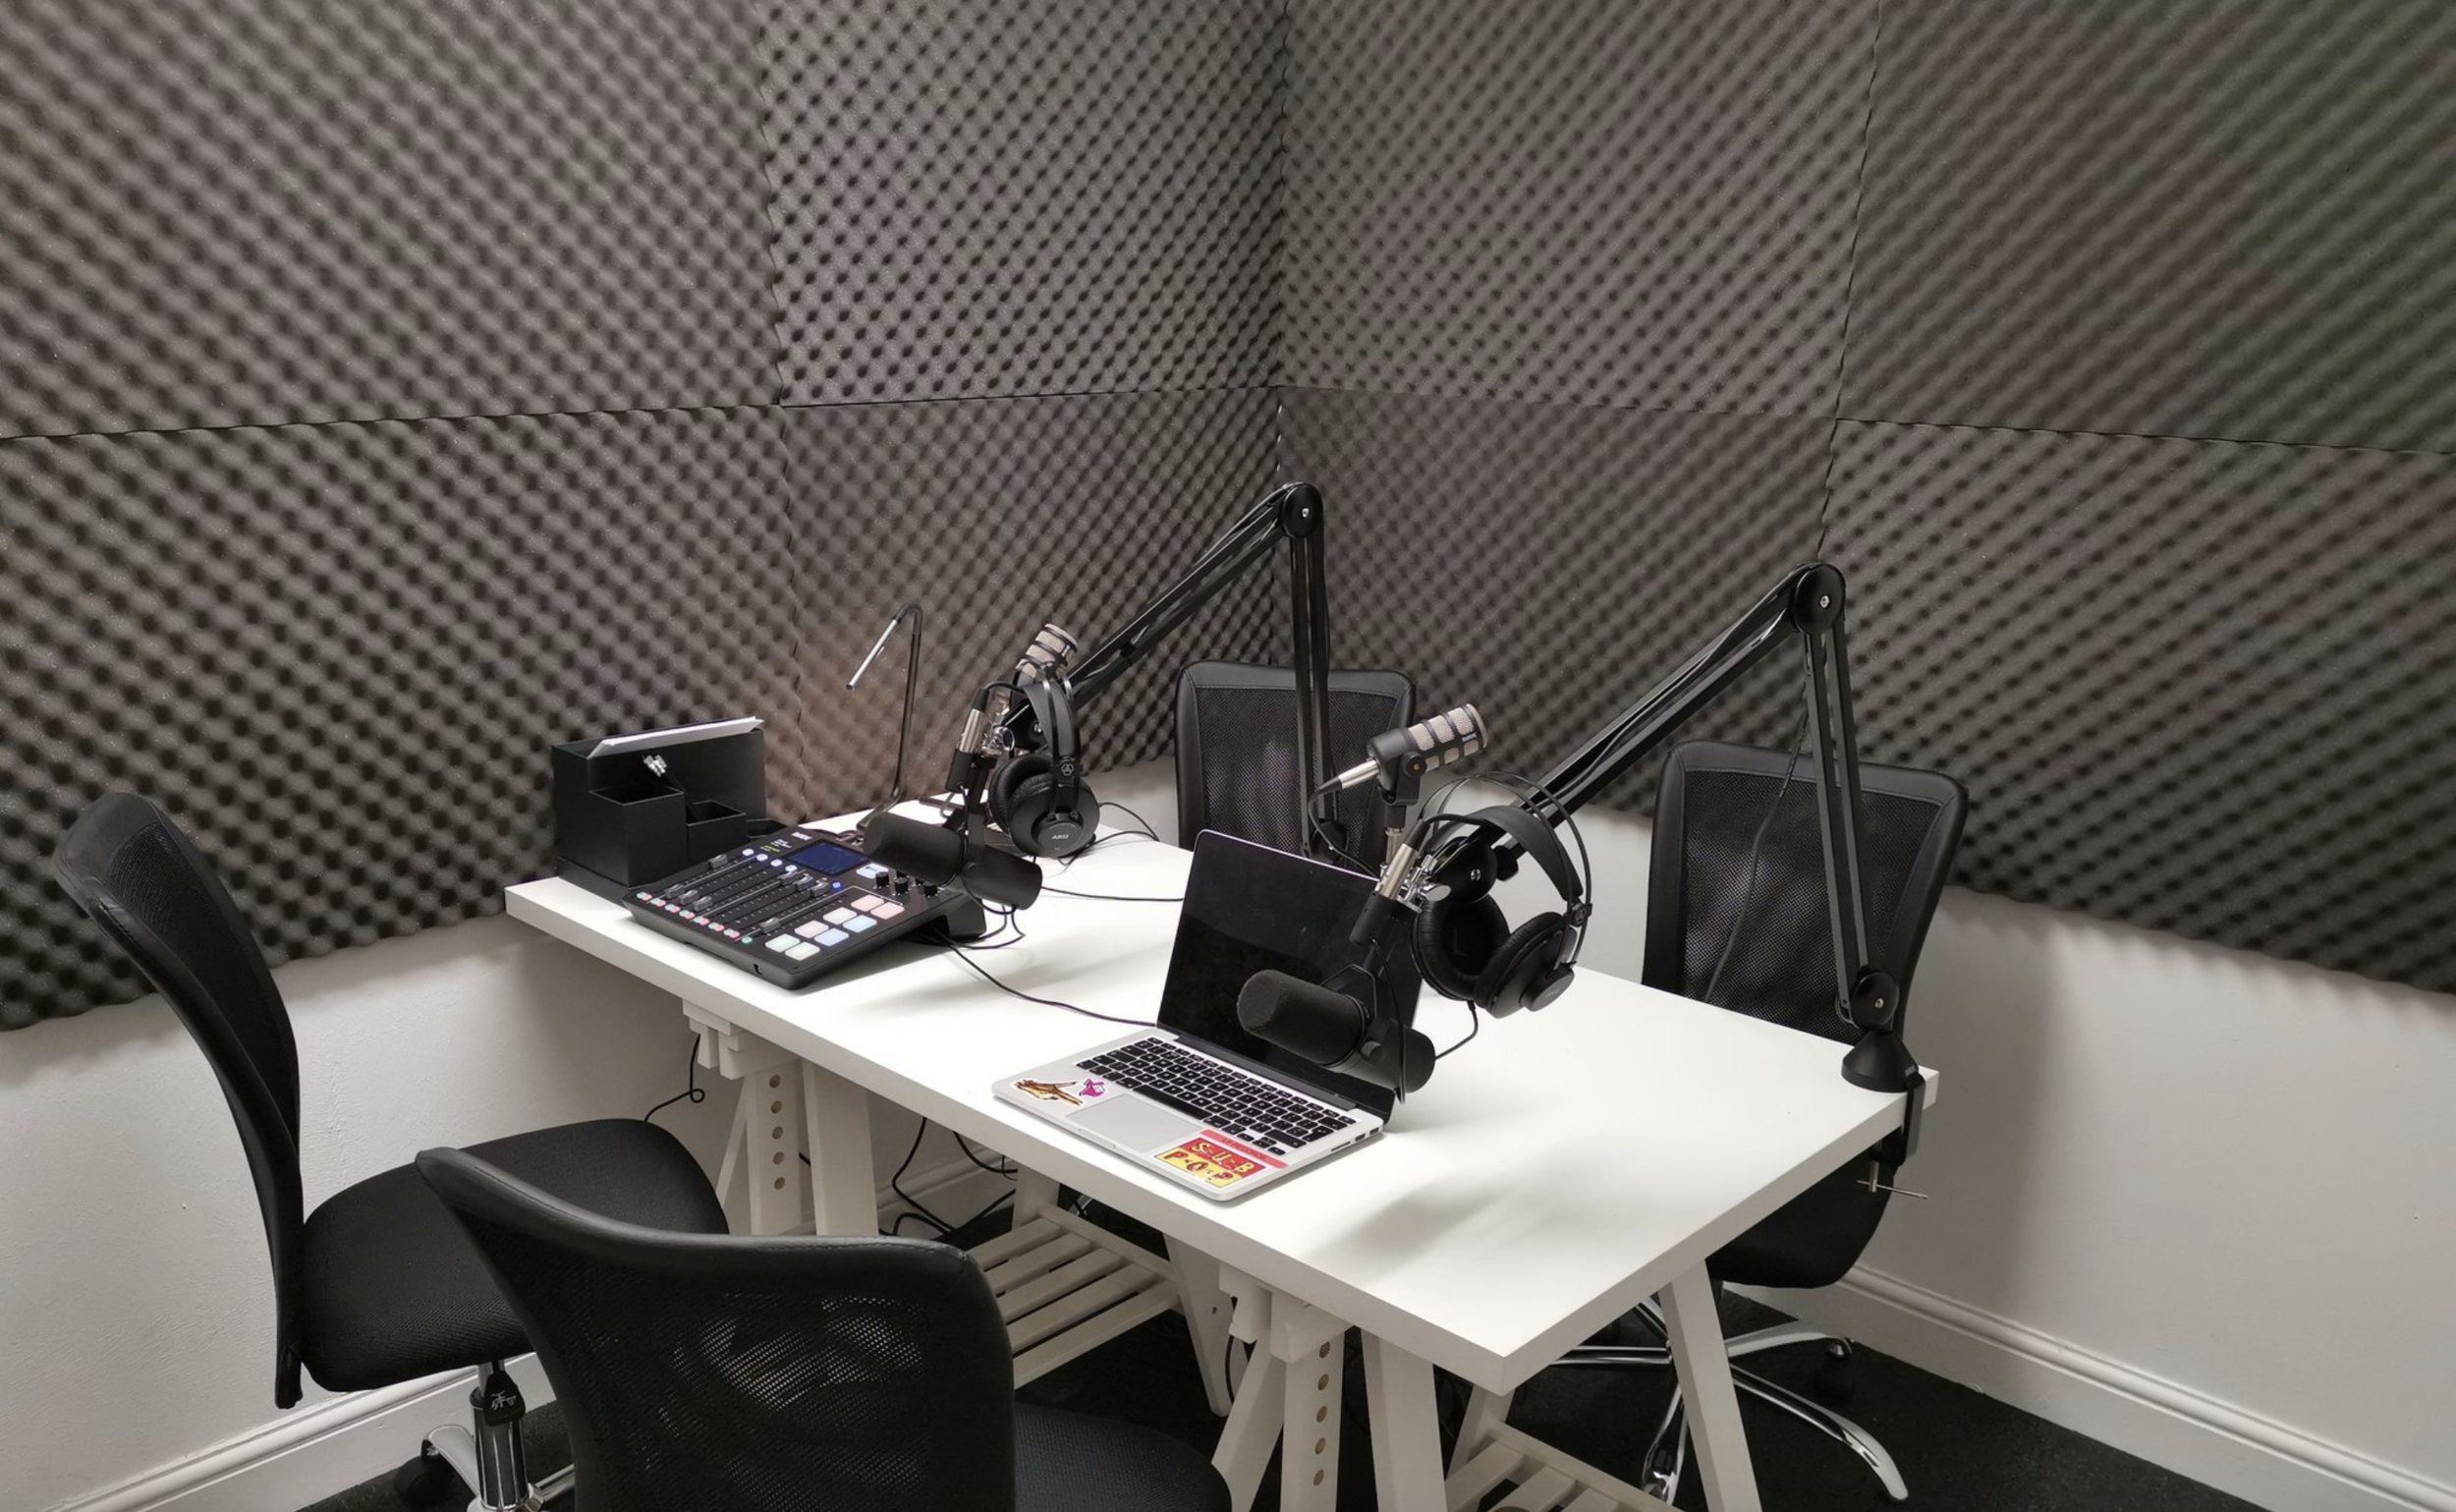 Podcast Ready Studios available for rent - Plug and record podcast studios equipped with top quality gear and scaling complexity for everyone from the earliest of novice to seasoned pros to record their project in the best environment possible for just £30 p/hLearn more ➝